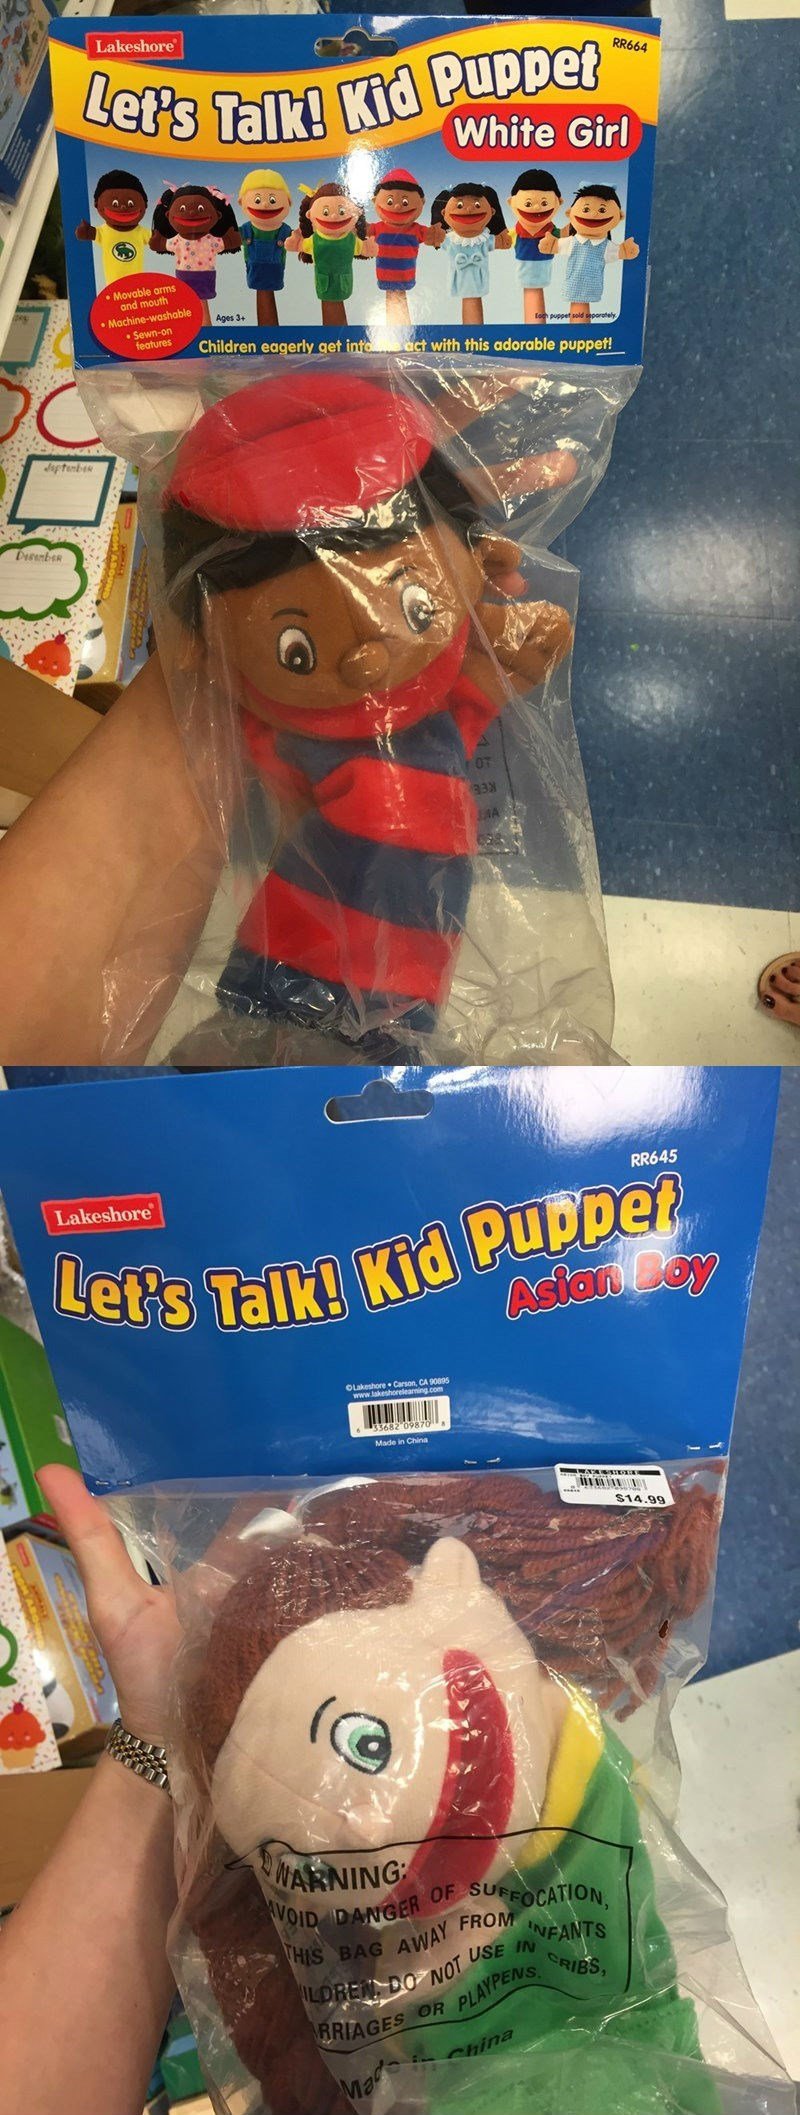 FAIL race products puppets